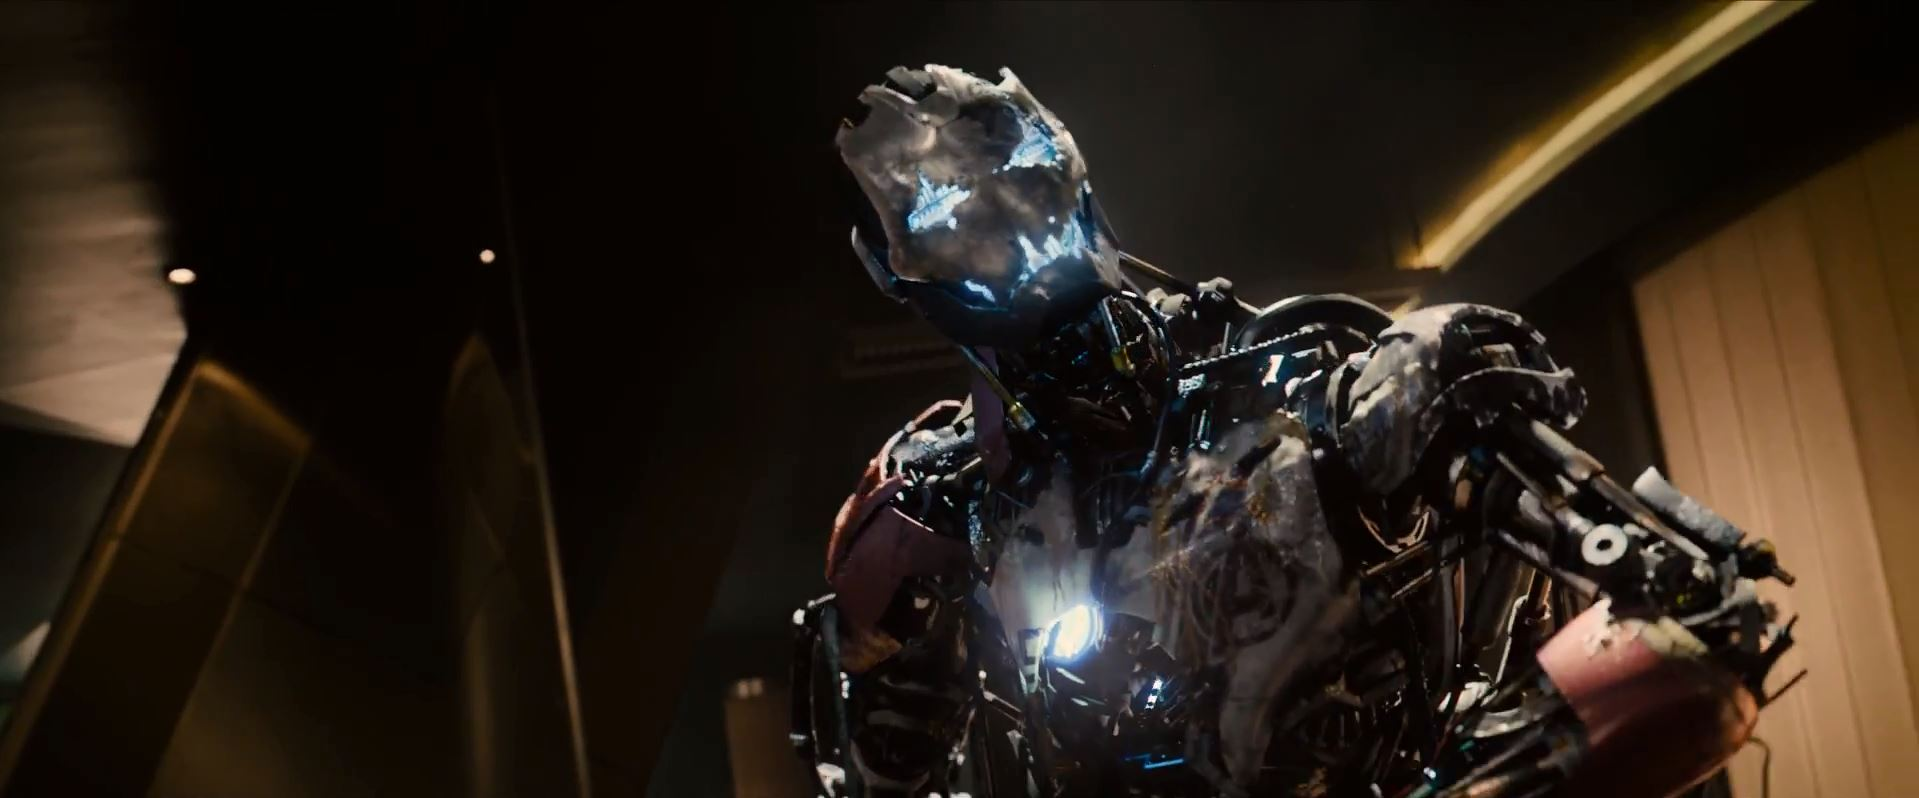 Avengers Age Of Ultron Trailer Released - A weakened Ultron (James Spader)